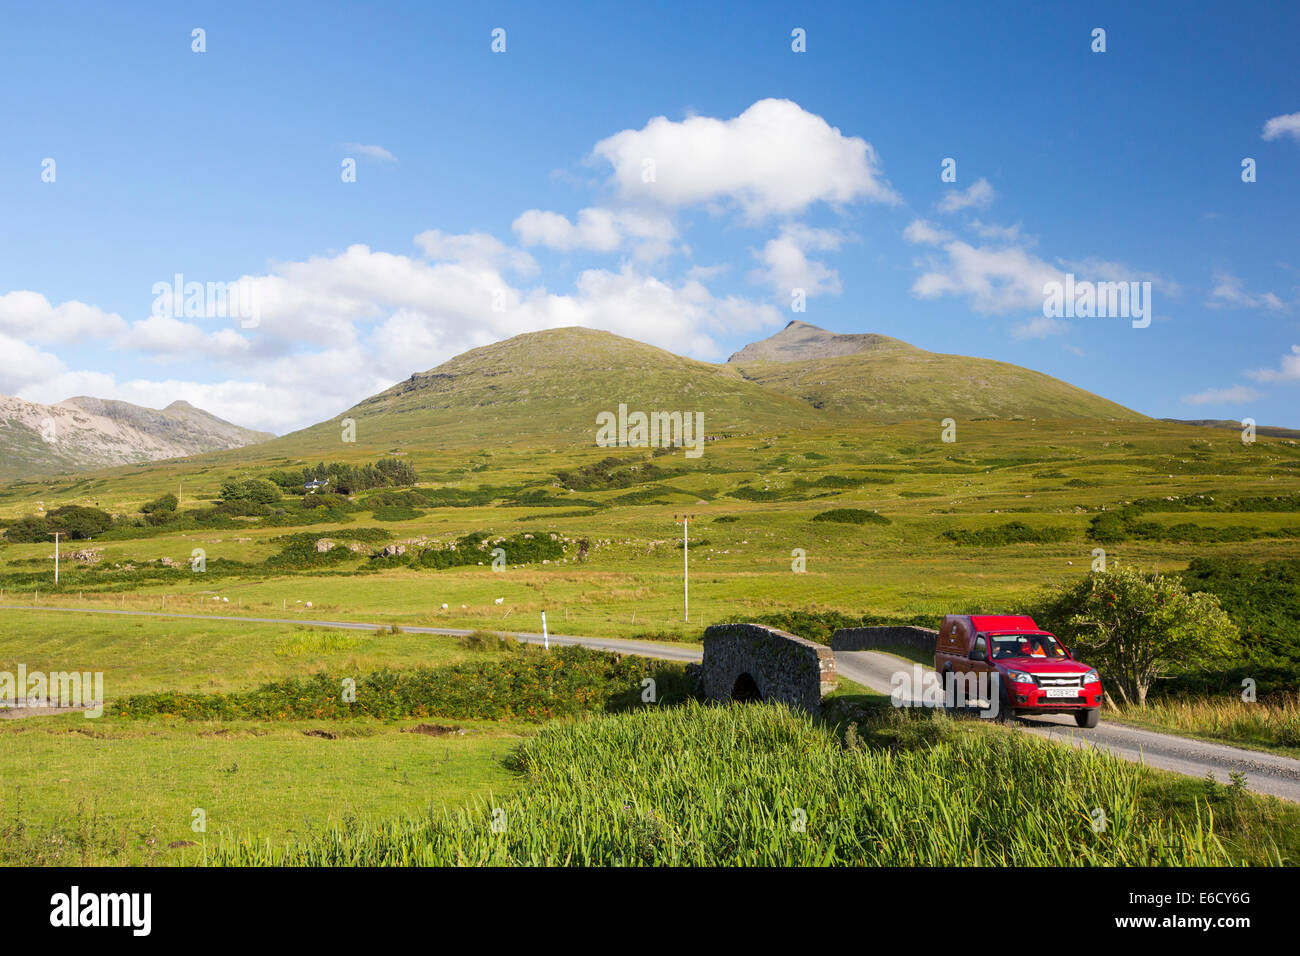 A post office car on the road below Ben More, a Munro on the Isle of Mull, Scotland, UK. - Stock Image